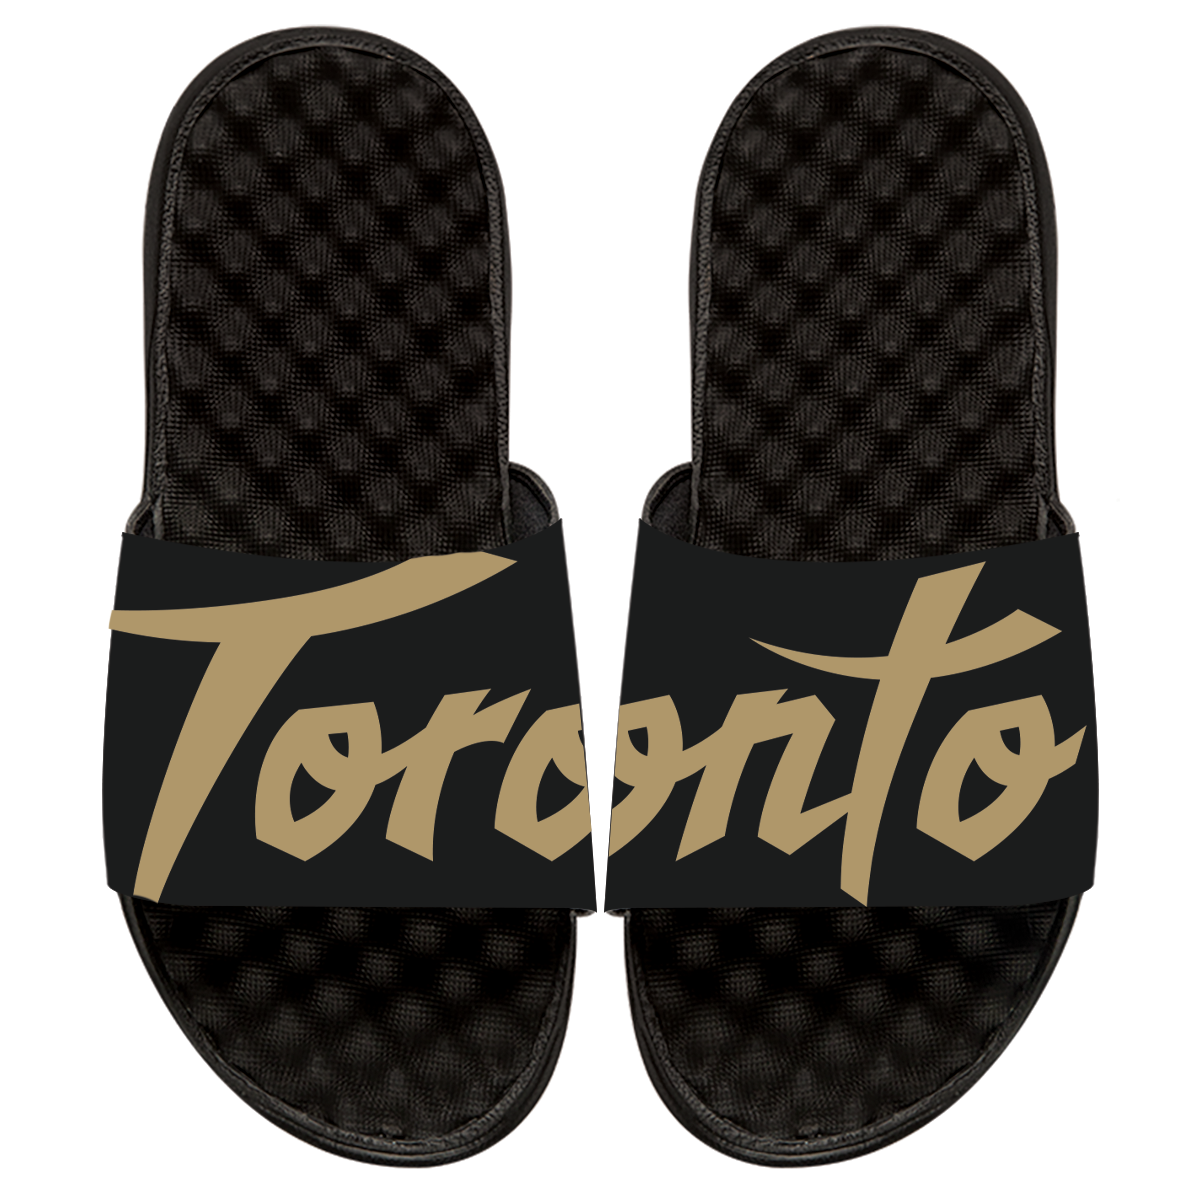 Raptors iSlide Sandal - 2019 City Edition